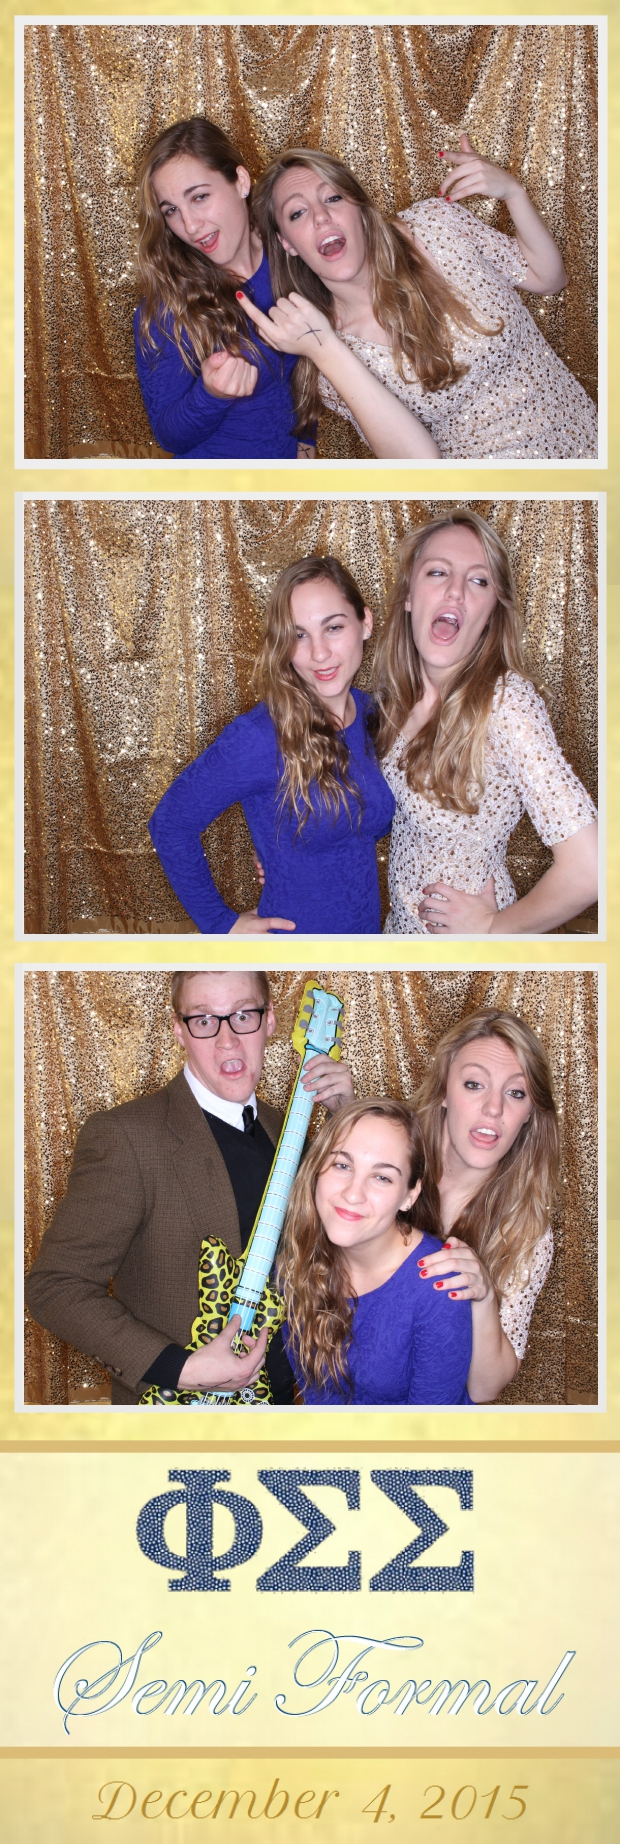 Guest House Events Photo Booth Phi Sigma Sigma Semi Formal (30).jpg